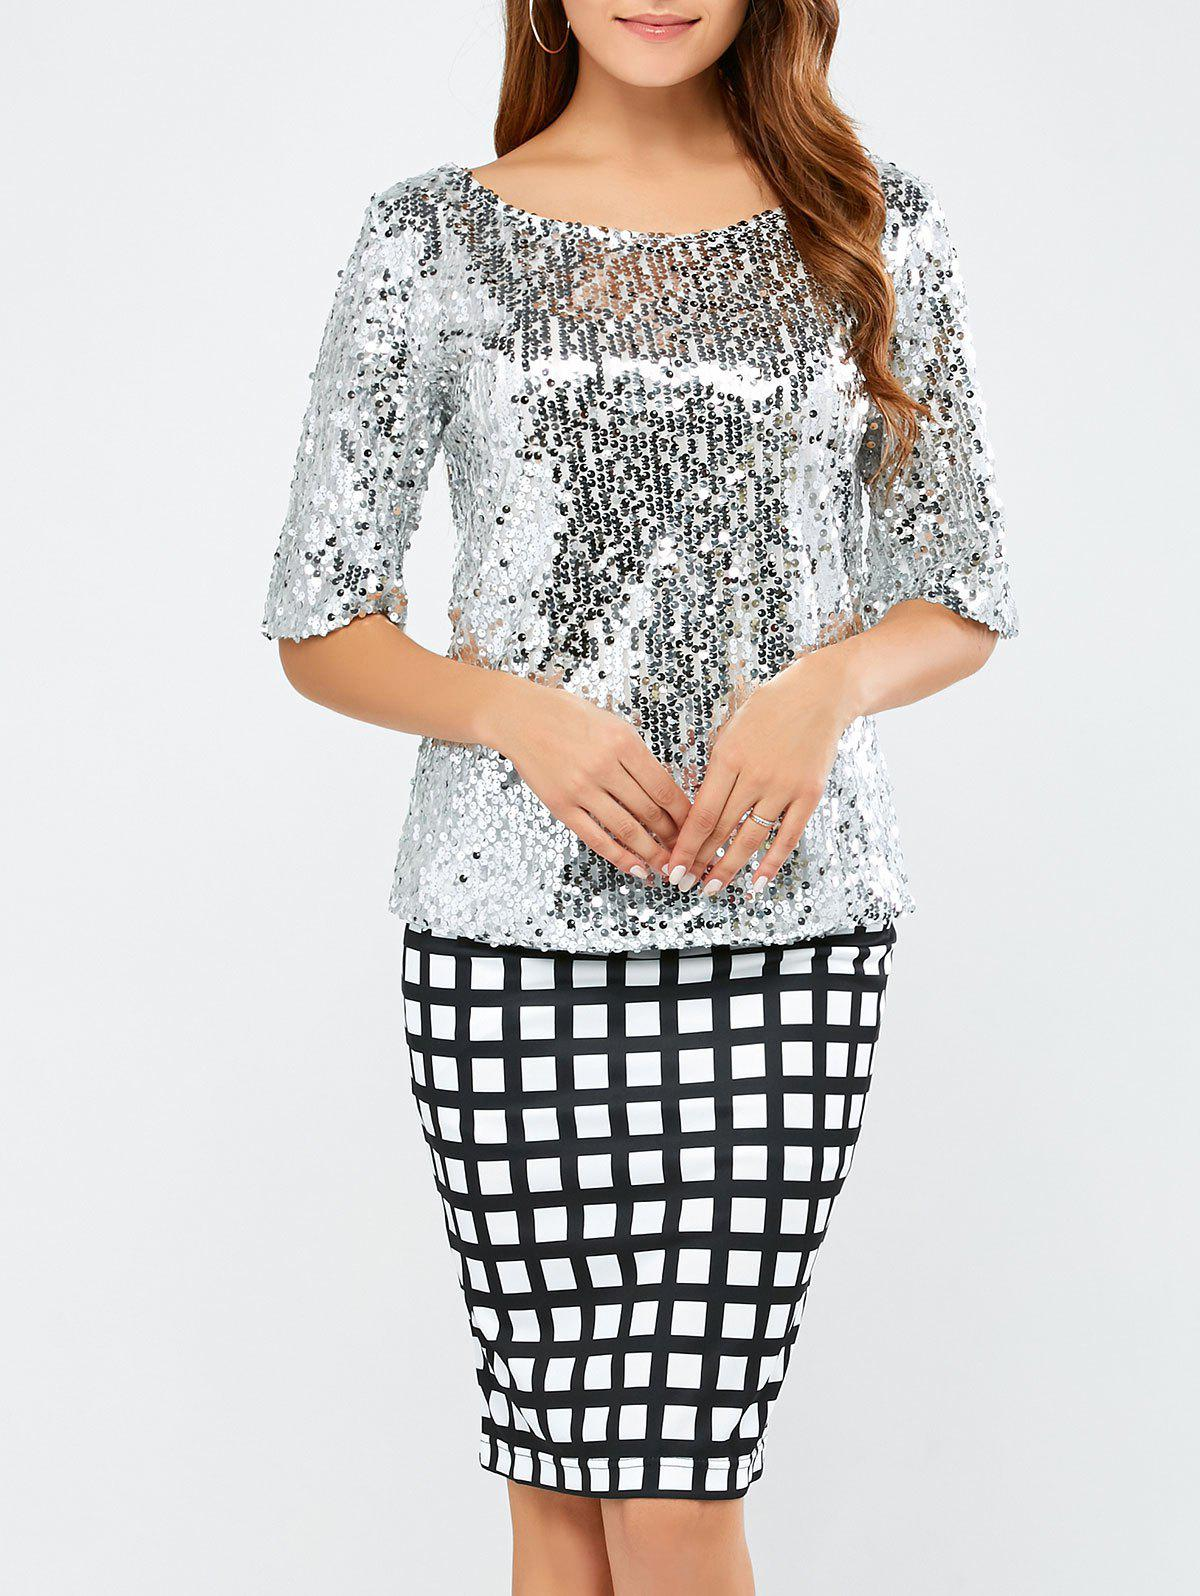 Sequined Short Sleeve TeeWomen<br><br><br>Size: L<br>Color: SILVER